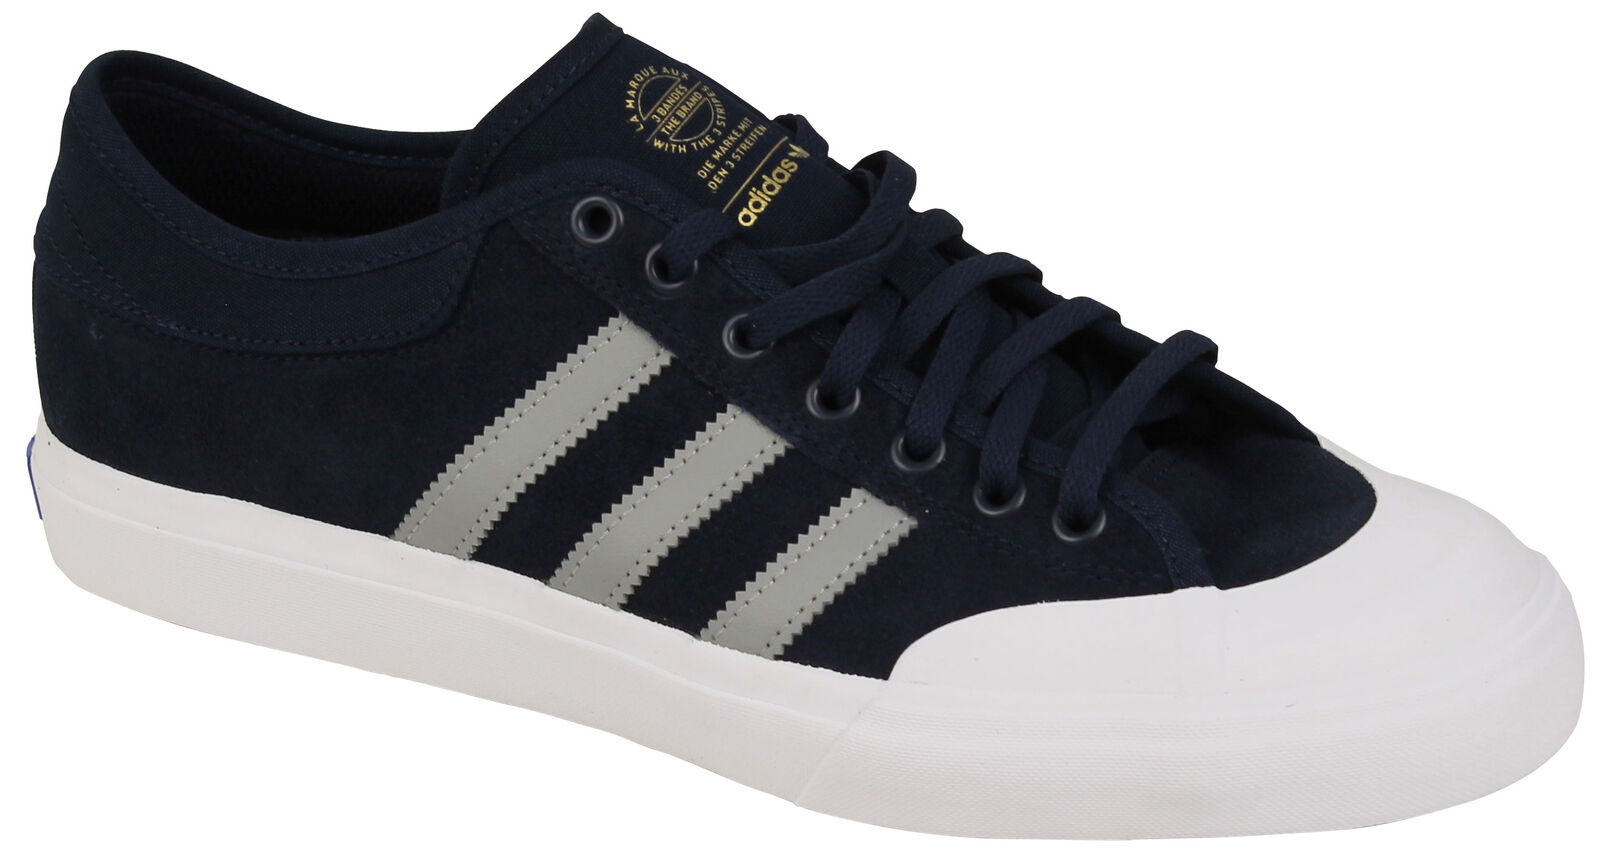 Adidas Matchcourt shoes - Collegiate Navy   MGH Solid   Gum - New